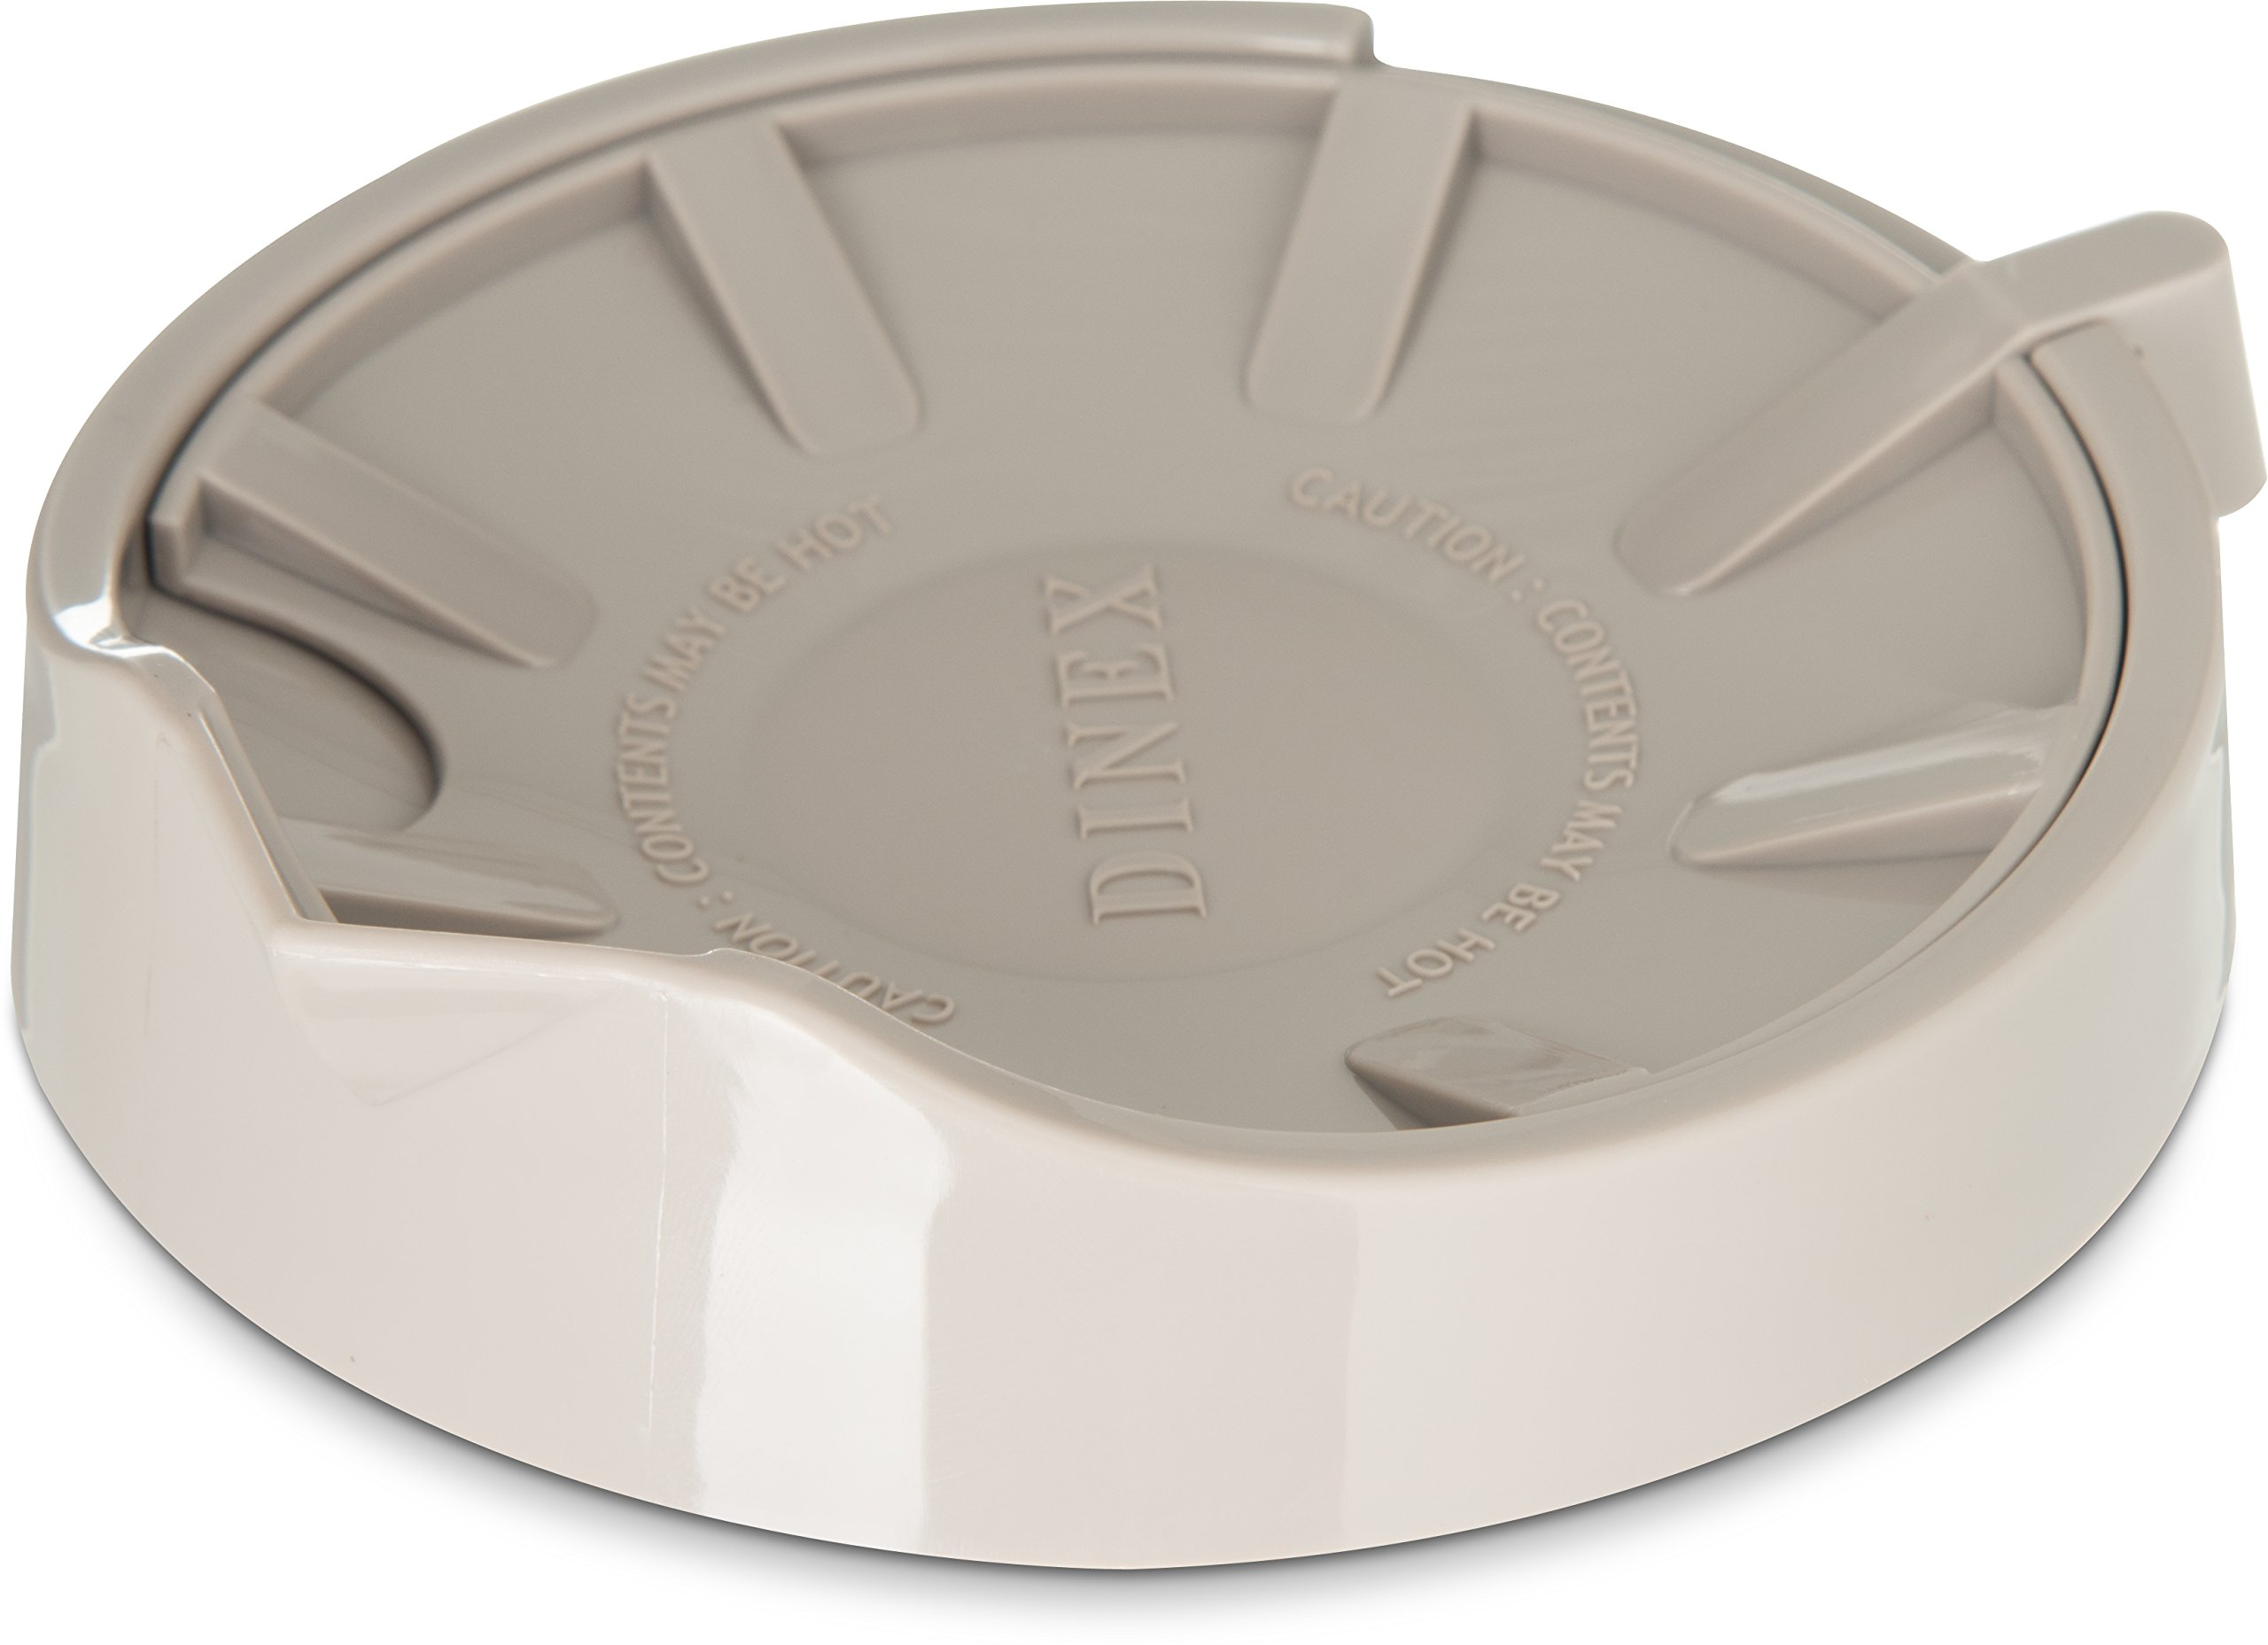 Dinex DX115631 Beverage Server Replacement Lid for DX1160 and DX1150, 0.5'' Height, 4'' Width, 4'' Length, Urethane Foam, Latte (Pack of 12)